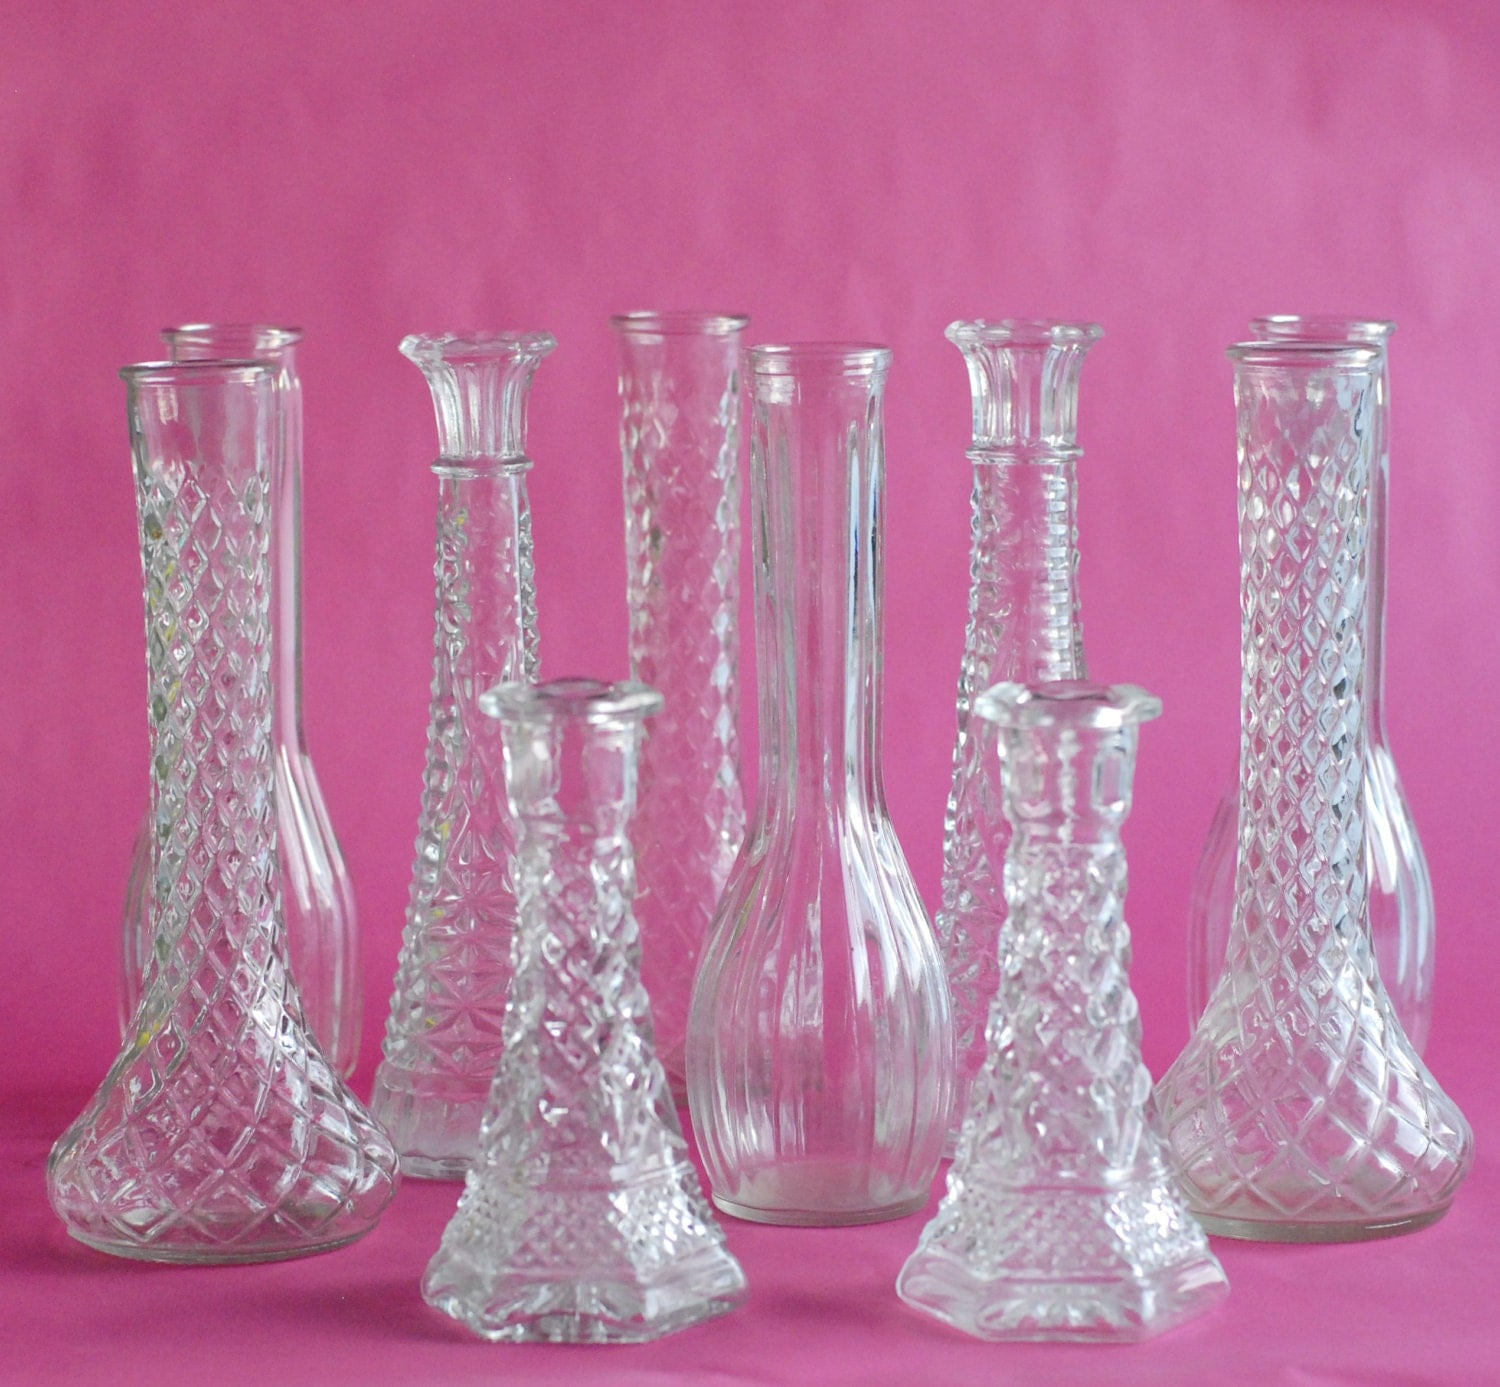 clear glass vintage 20 bud vase collection tall 9 bud. Black Bedroom Furniture Sets. Home Design Ideas